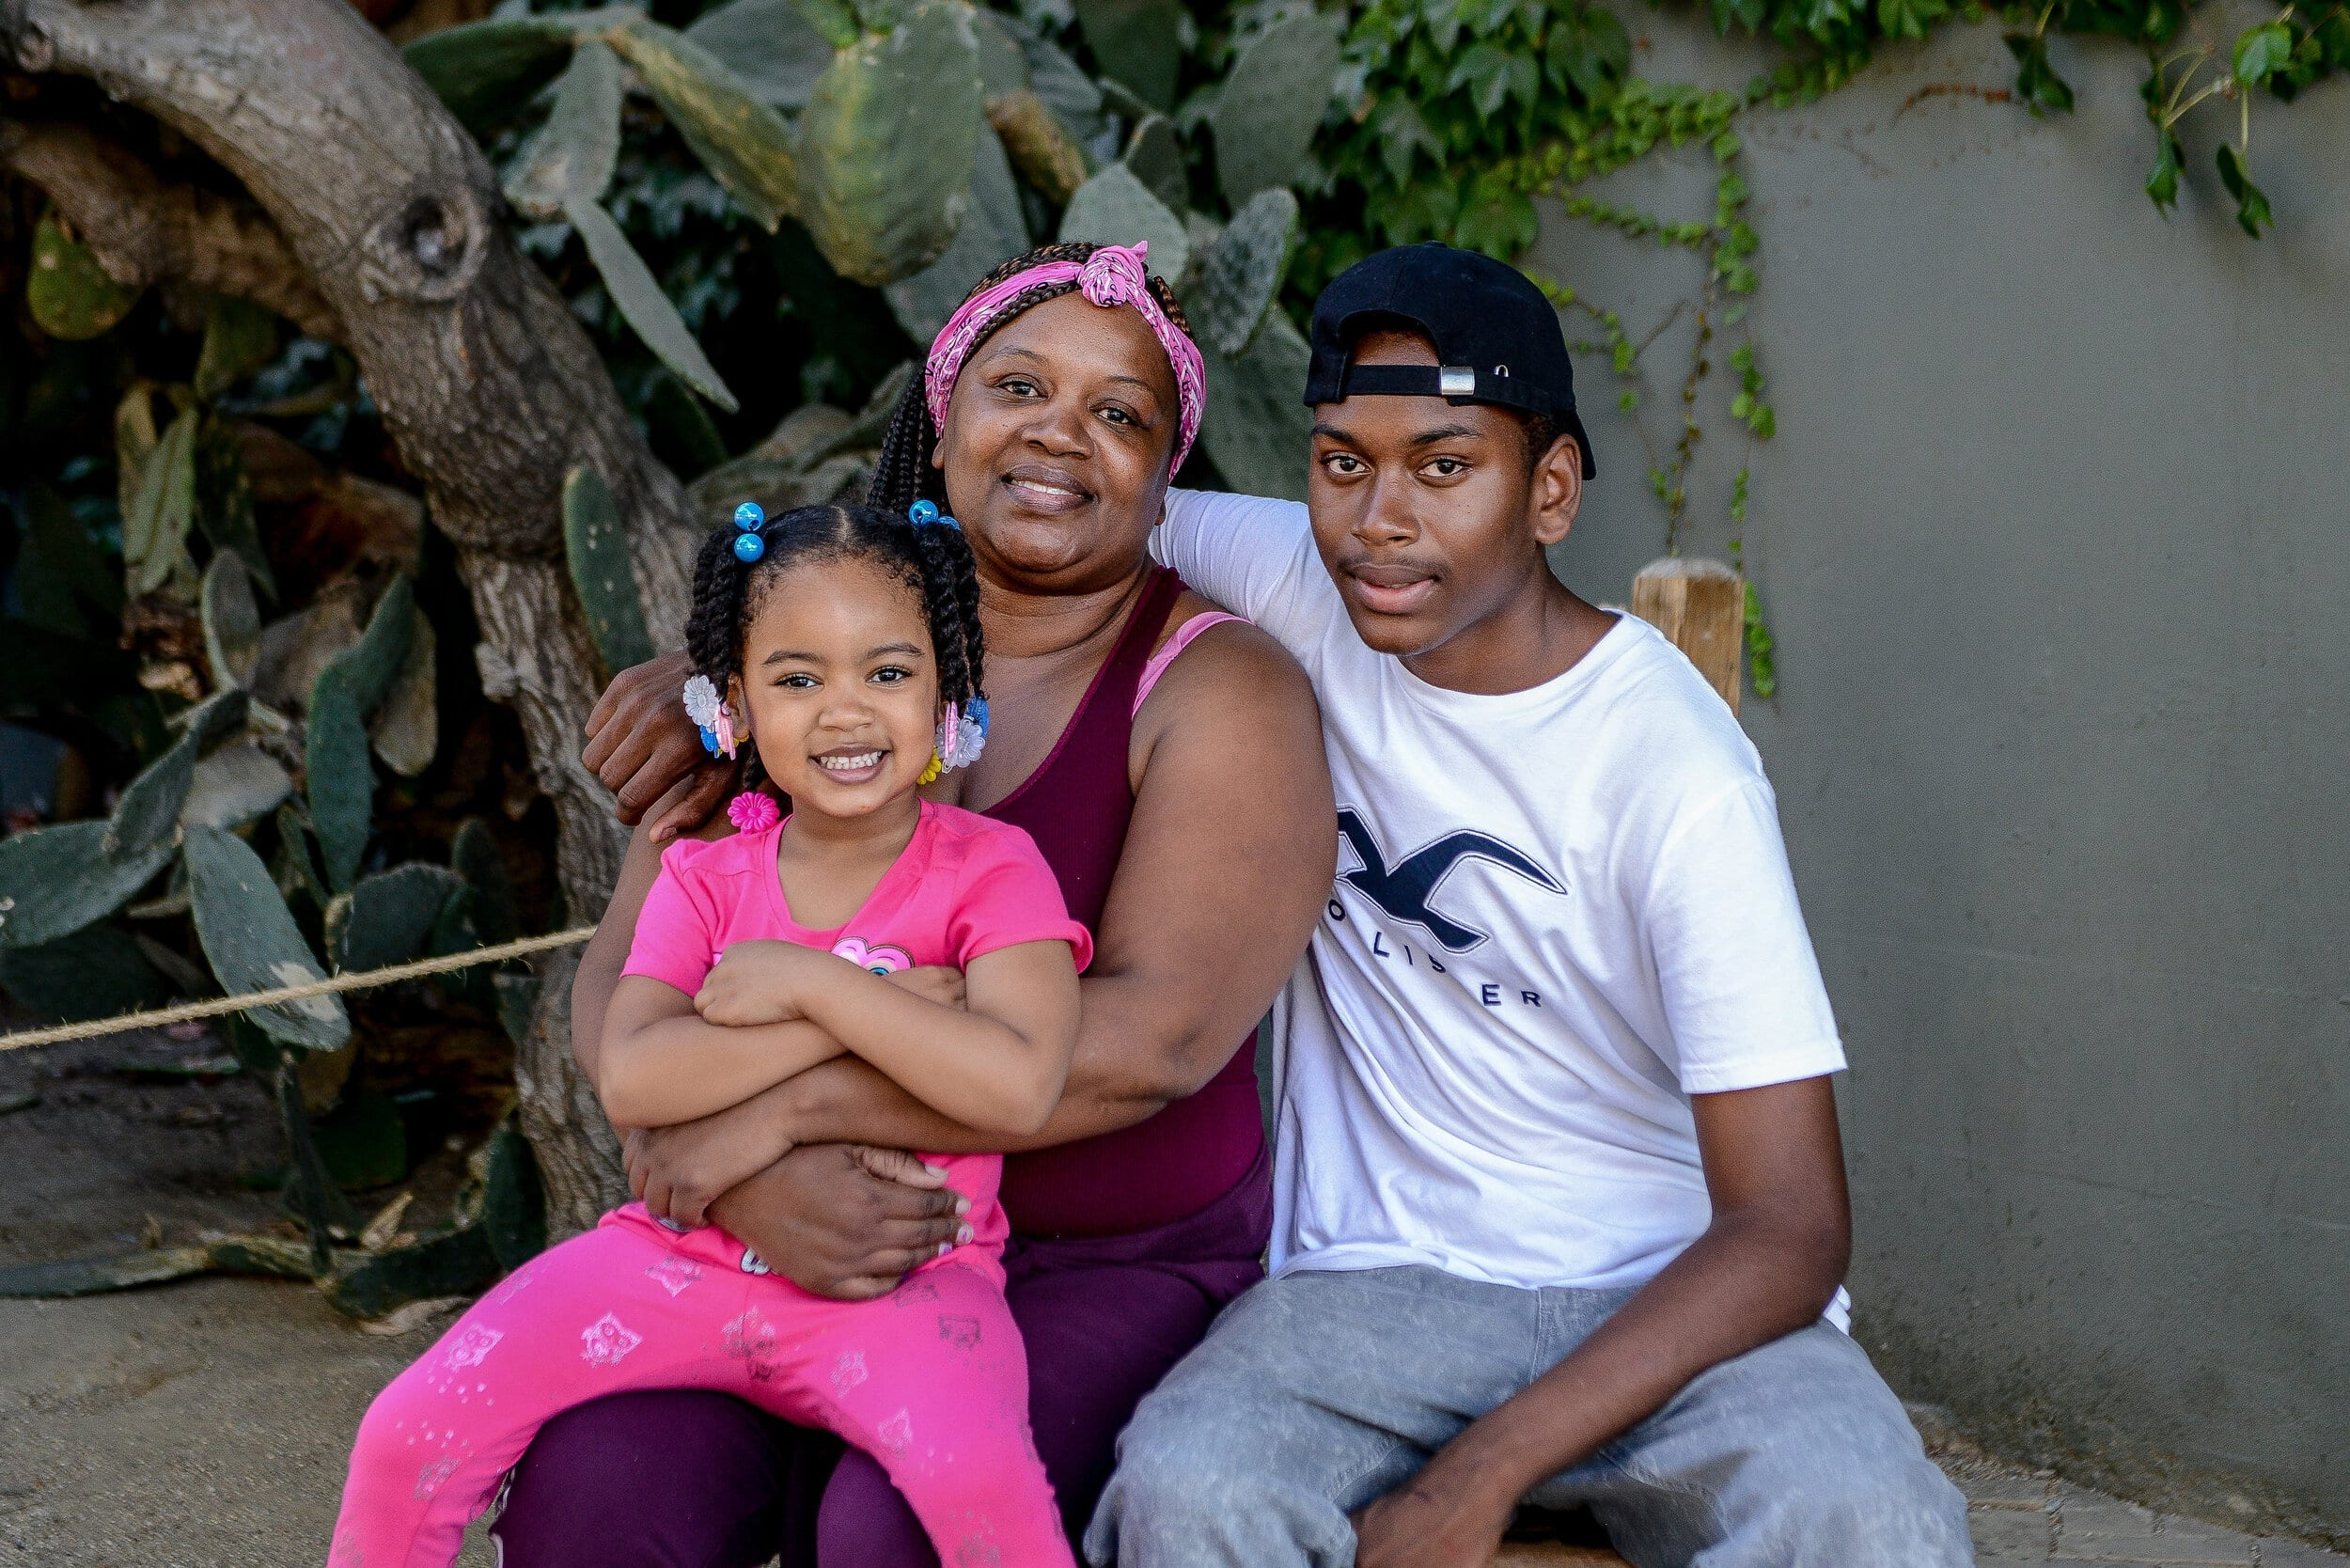 Supporting the rights of under-represented families in our community